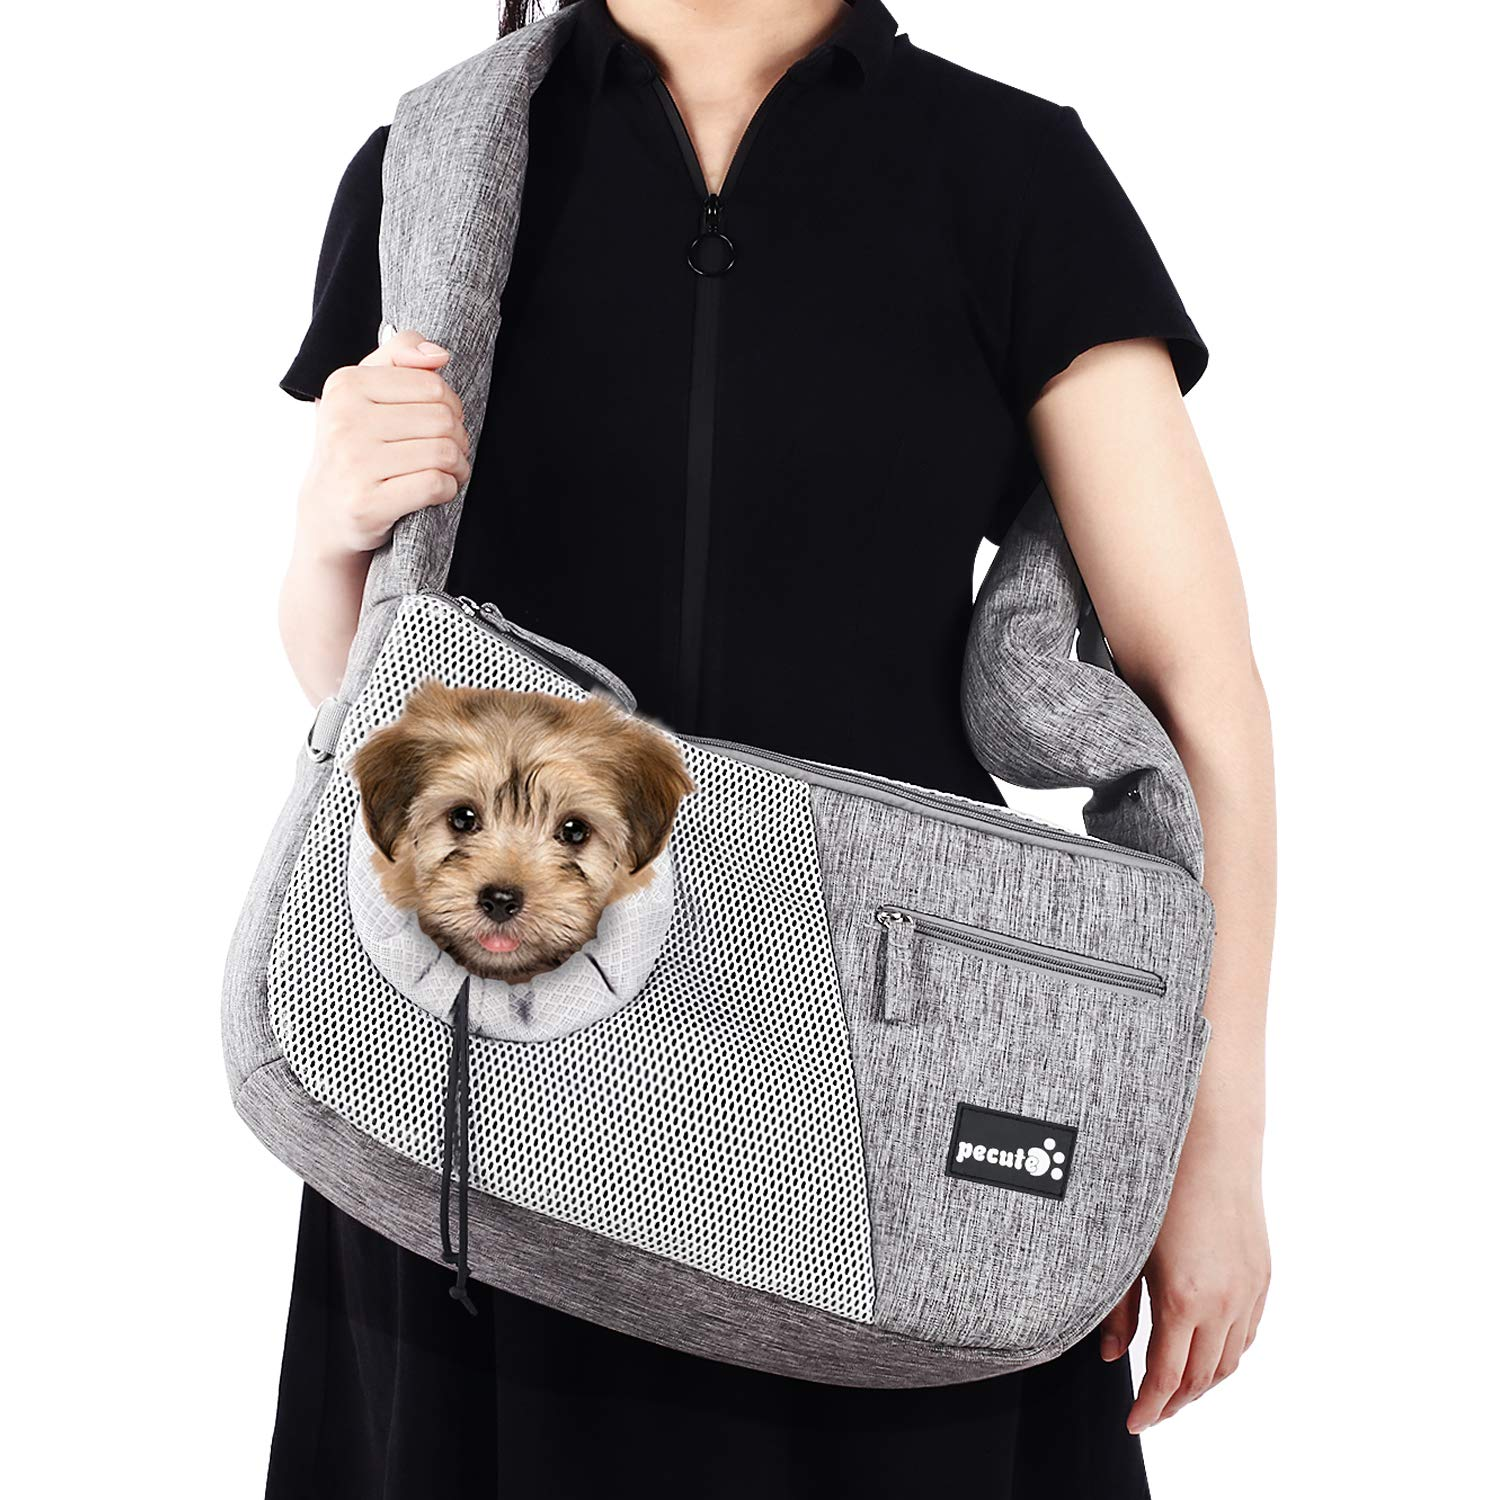 Cute and Very Fashionable  Small Dog Carrier.